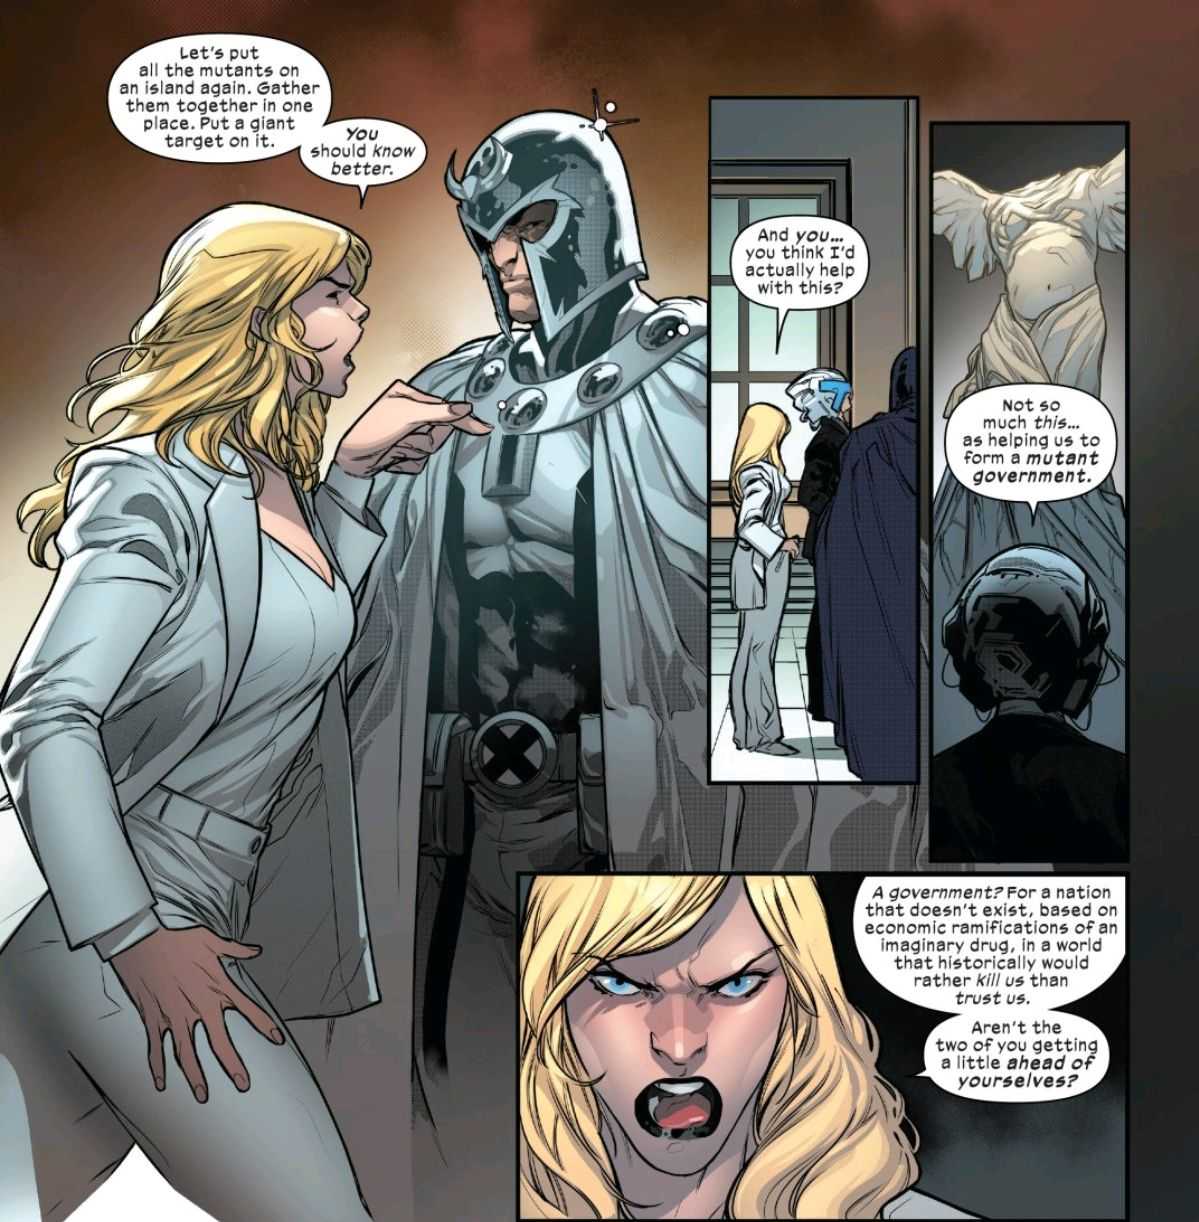 Emma Frost berates Magneto and Professor X for endangering mutants with their too ambitious plan for a mutant nation, in Powers of X #5, Marvel Comics (2019).